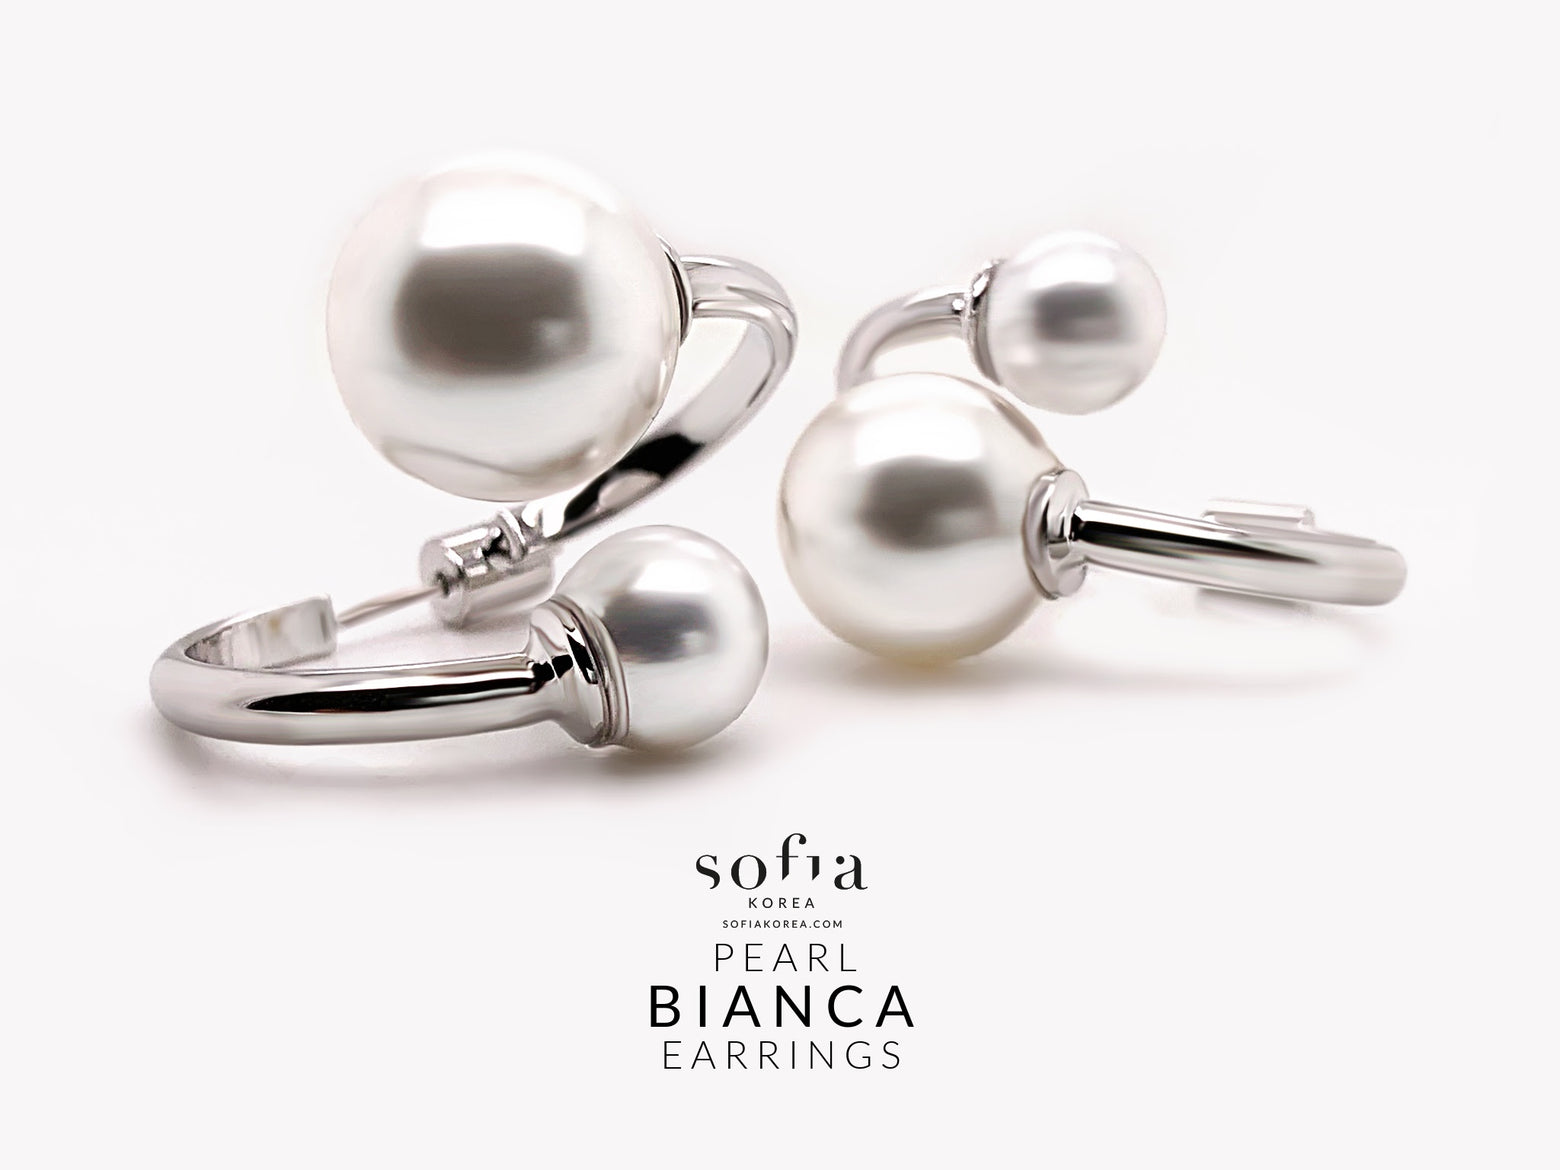 Bianca Earrings - Sofiakorea